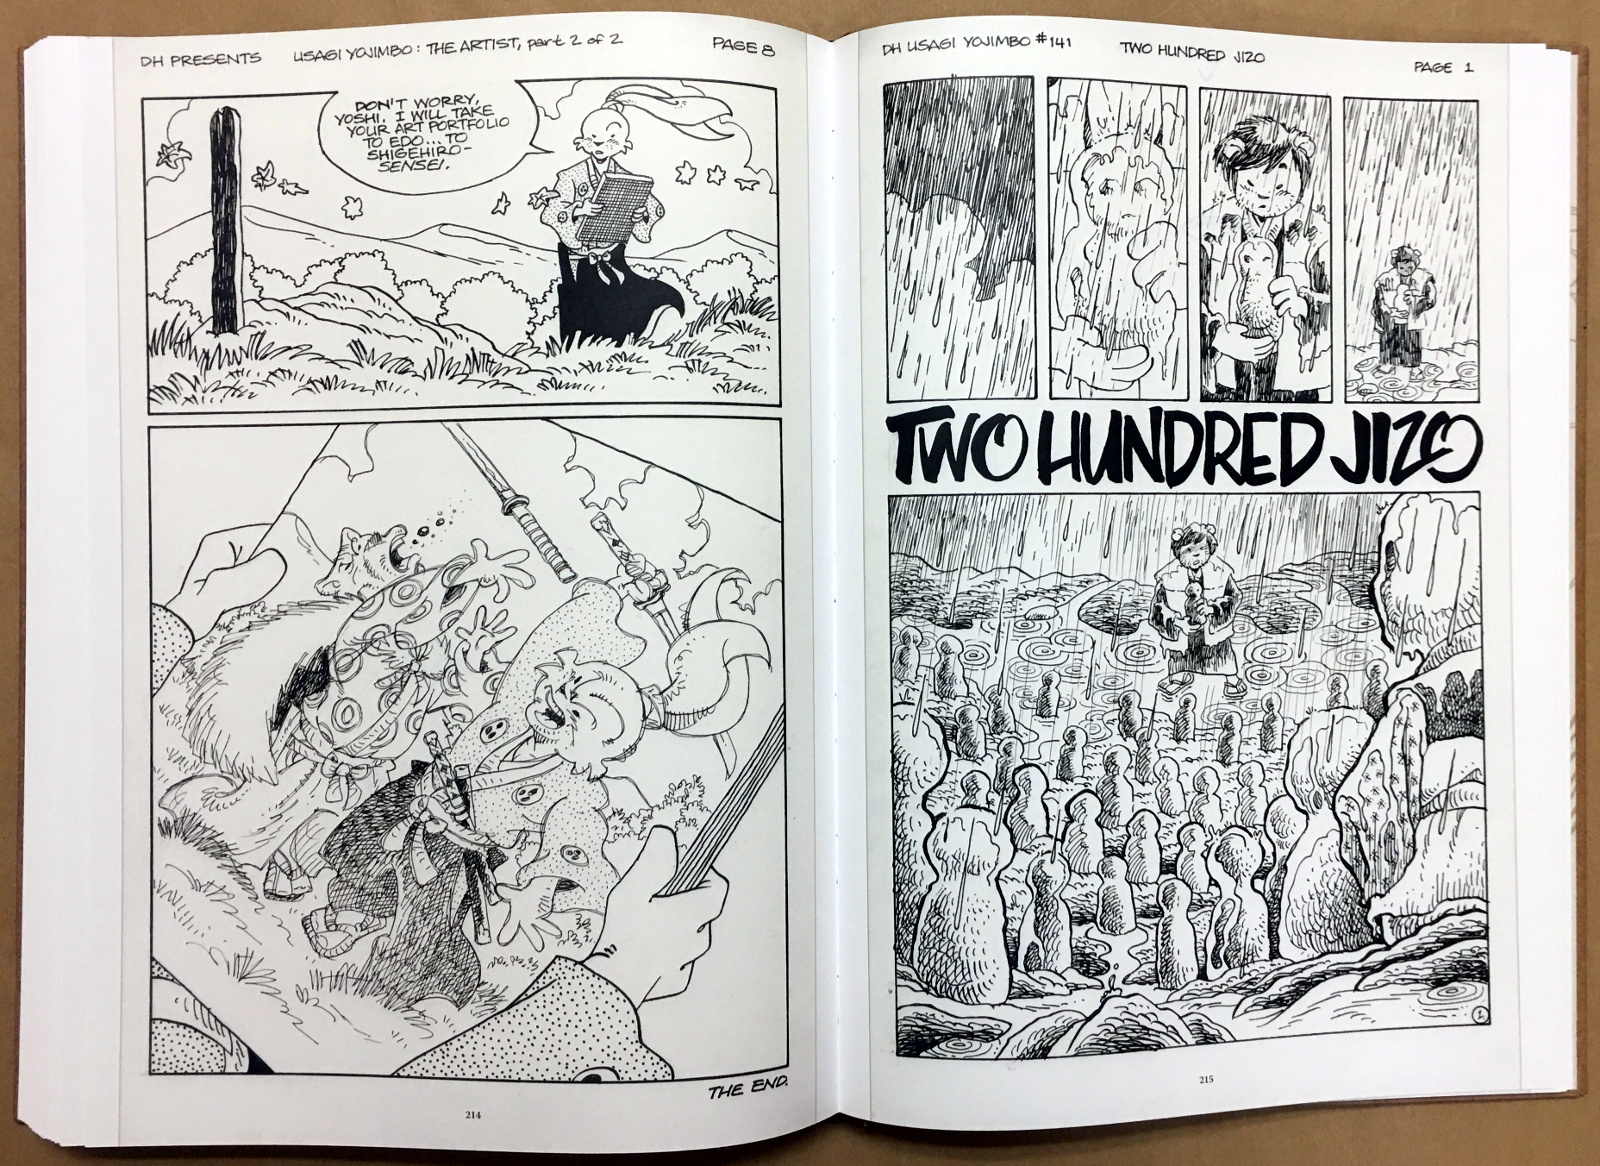 Usagi Yojimbo: The Artist and Other Stories Gallery Edition 40